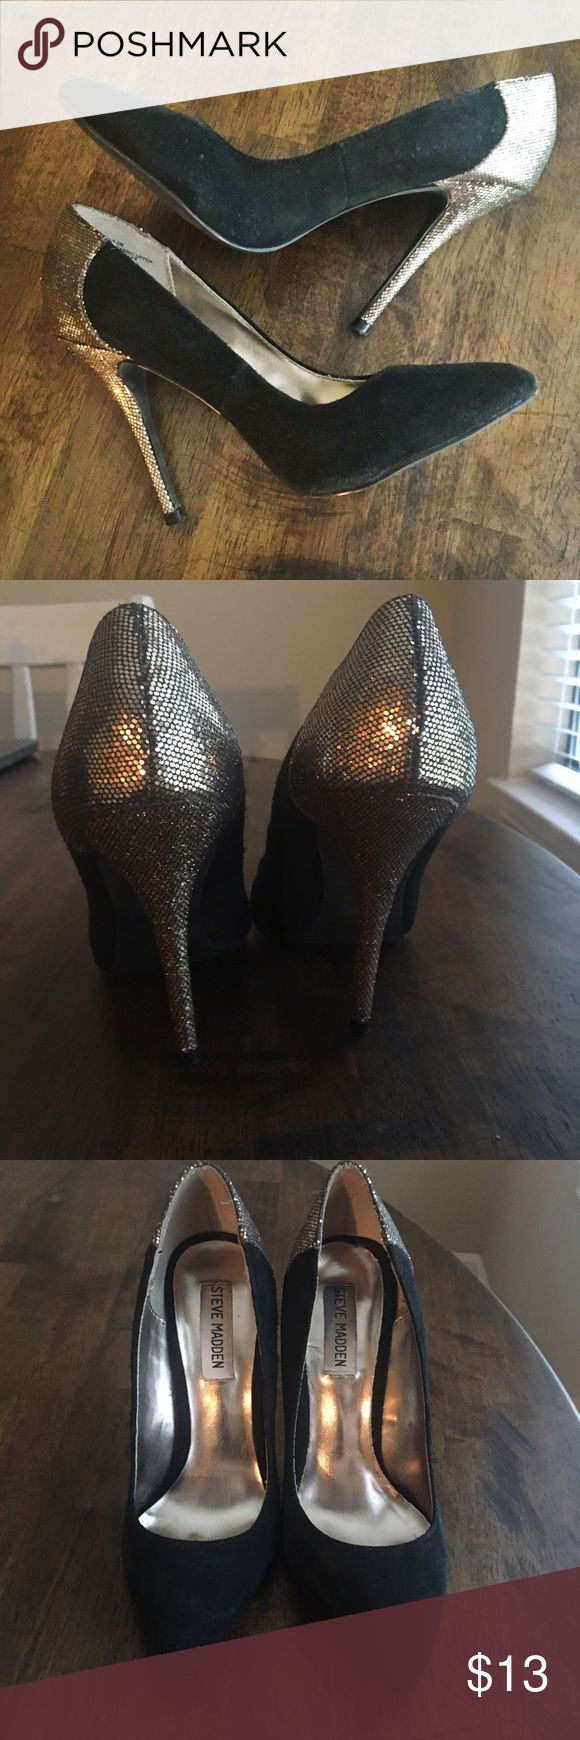 Steve Madden Black and Gold Pumps - cute! Size 6.5, these classic silhouette pumps have a tasteful dose of shiny gold! You can dress these up or down, there are so many ways to wear these and you'll get nothing but compliments. 👠 Steve Madden Shoes Heels